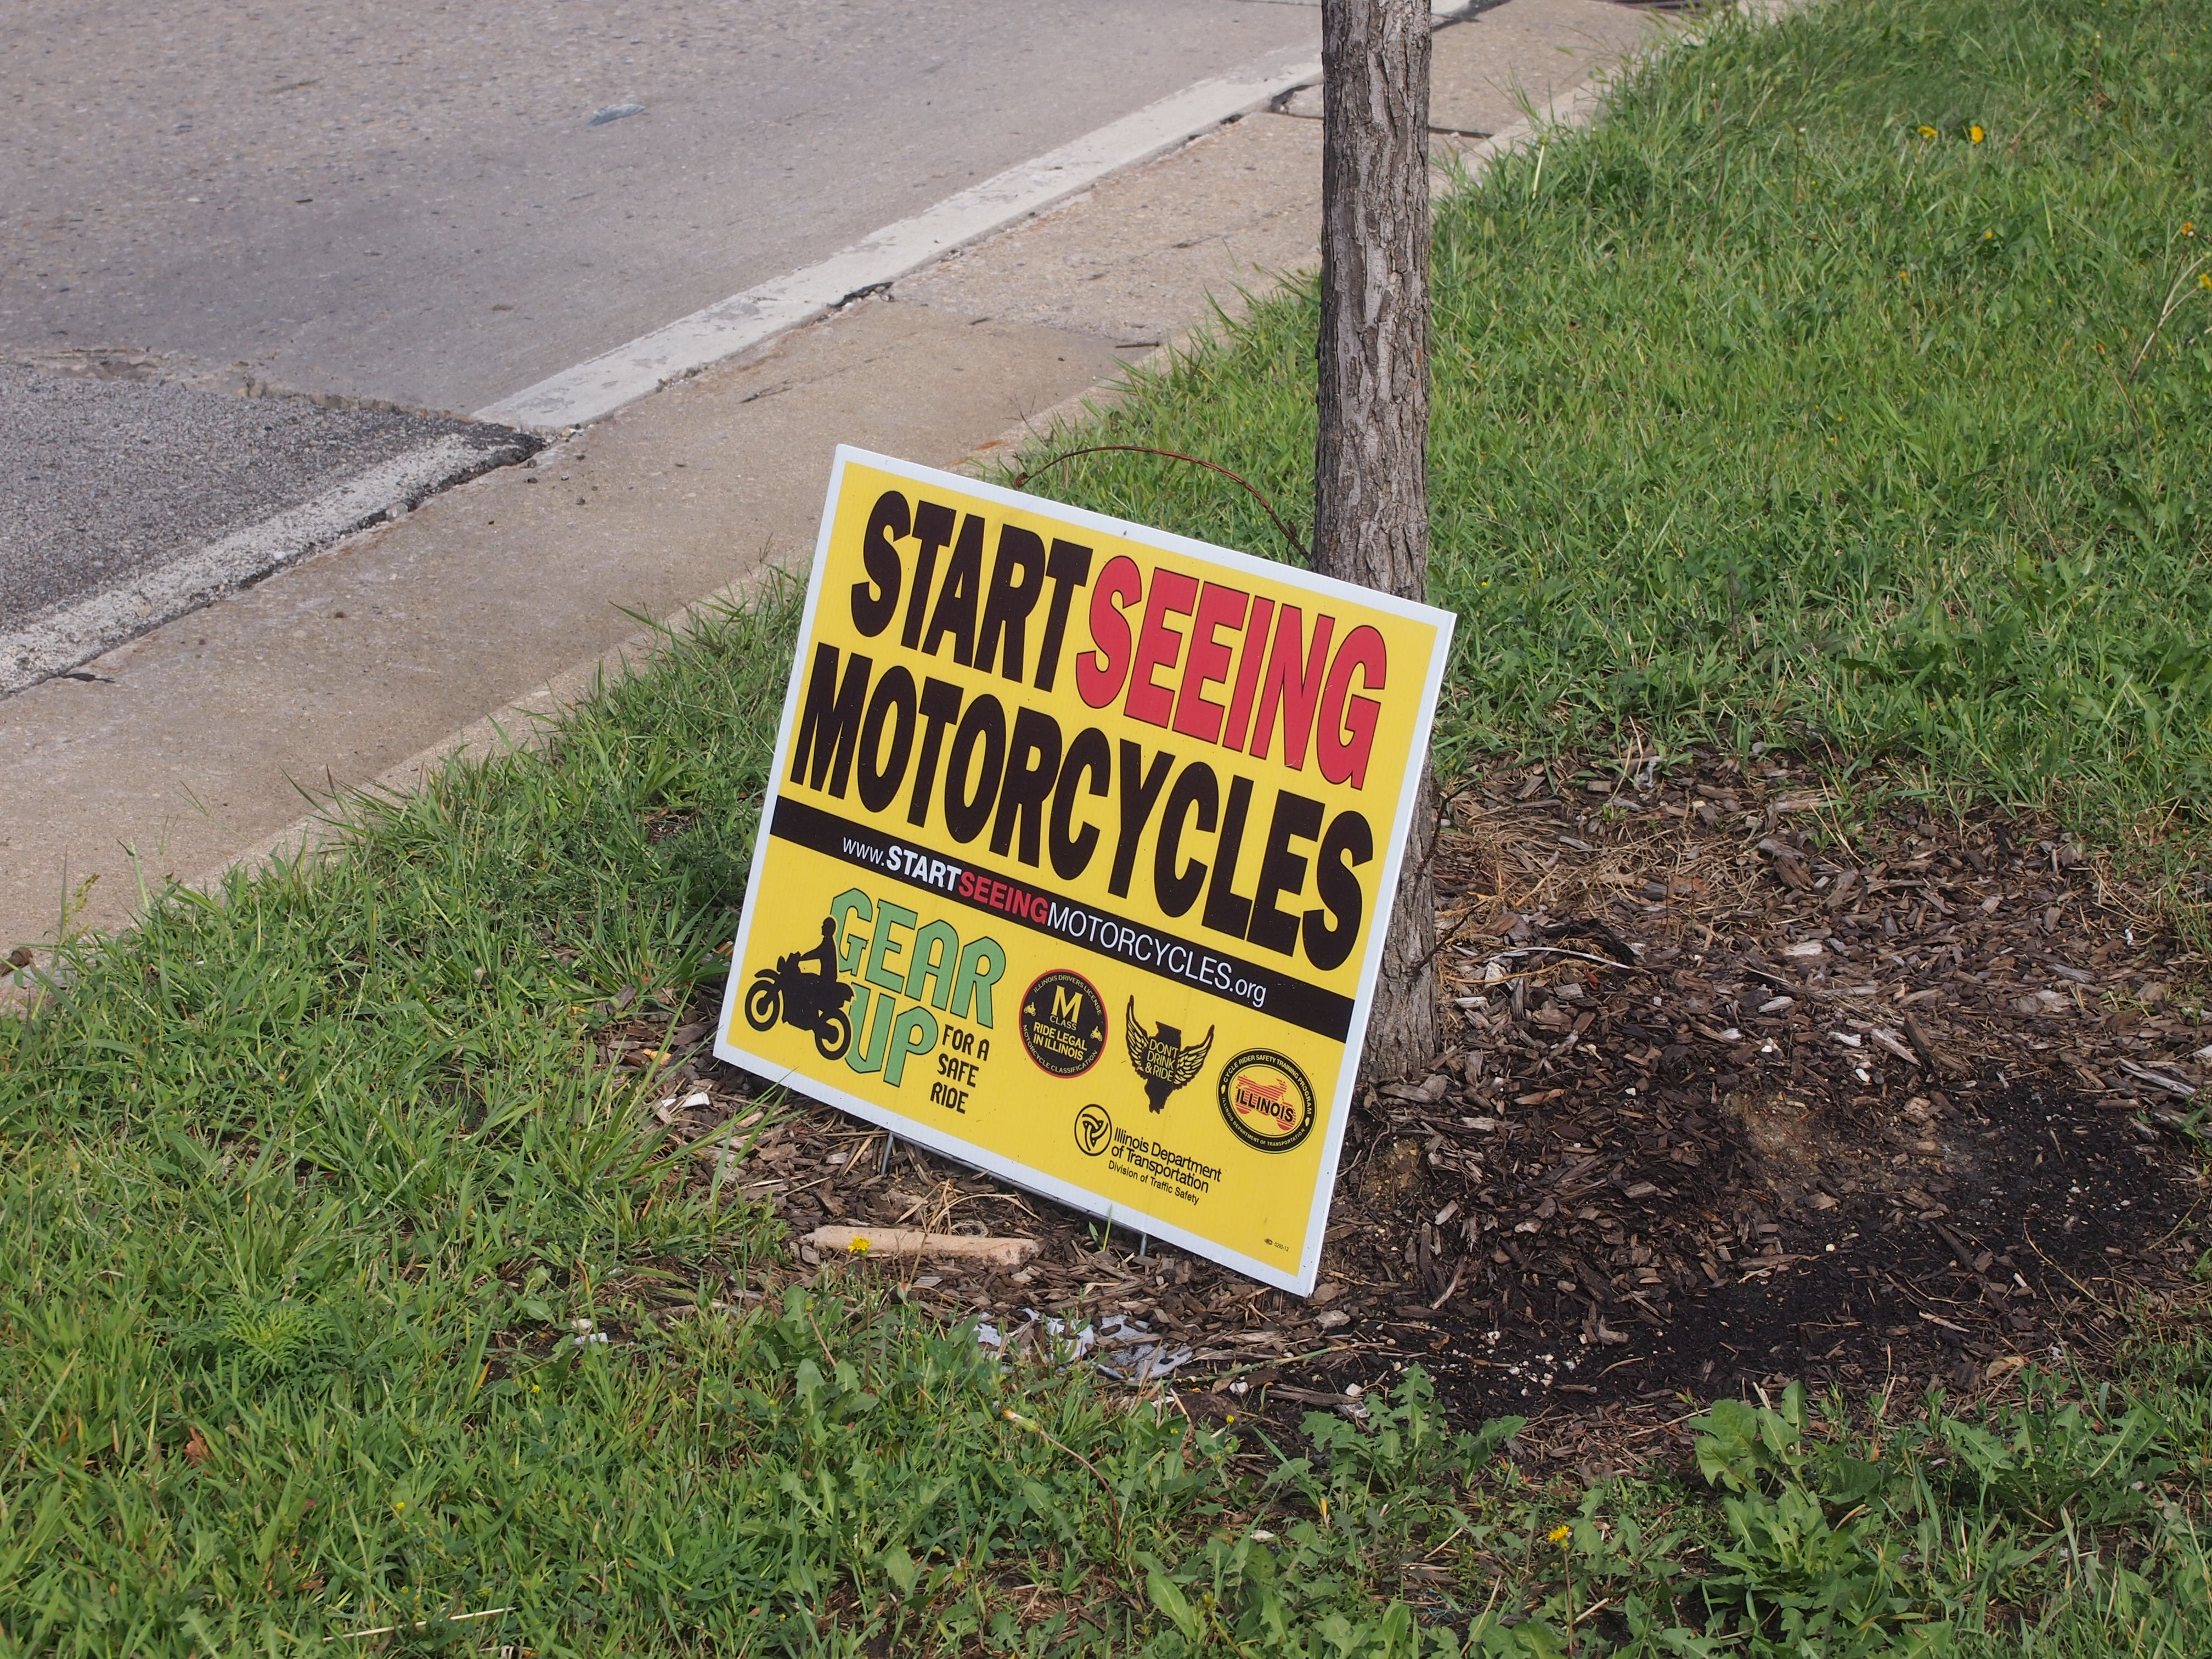 Start Seeing Motorcycles